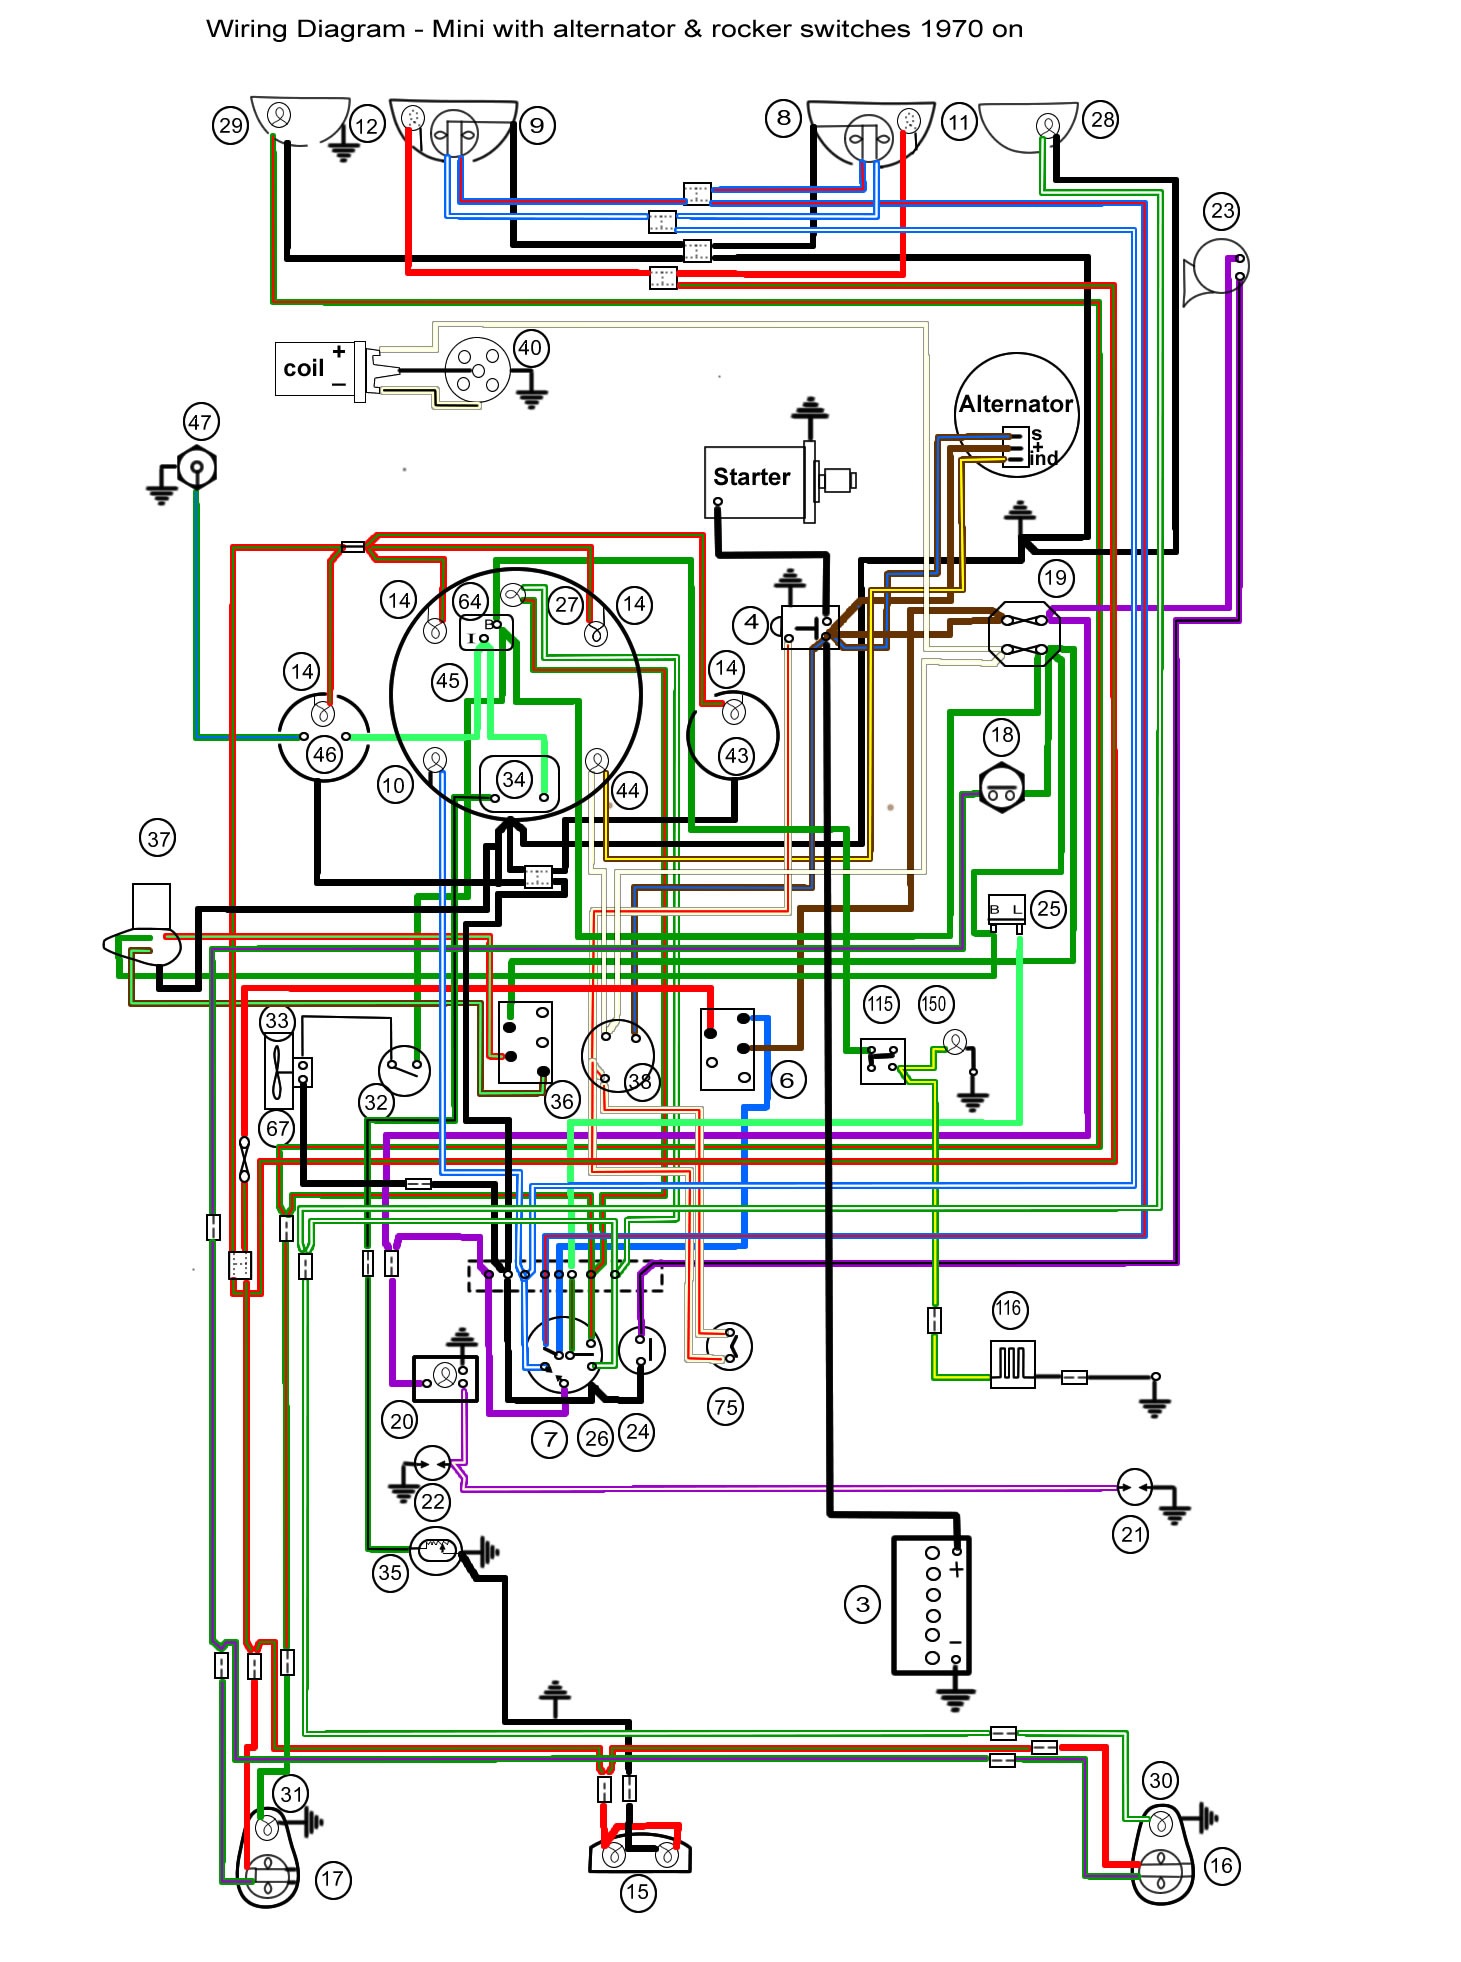 Electrical ColourWiringDiagram minifinity the classic mini forum and resource \u2022 view topic austin mini 1970 wiring diagram at alyssarenee.co